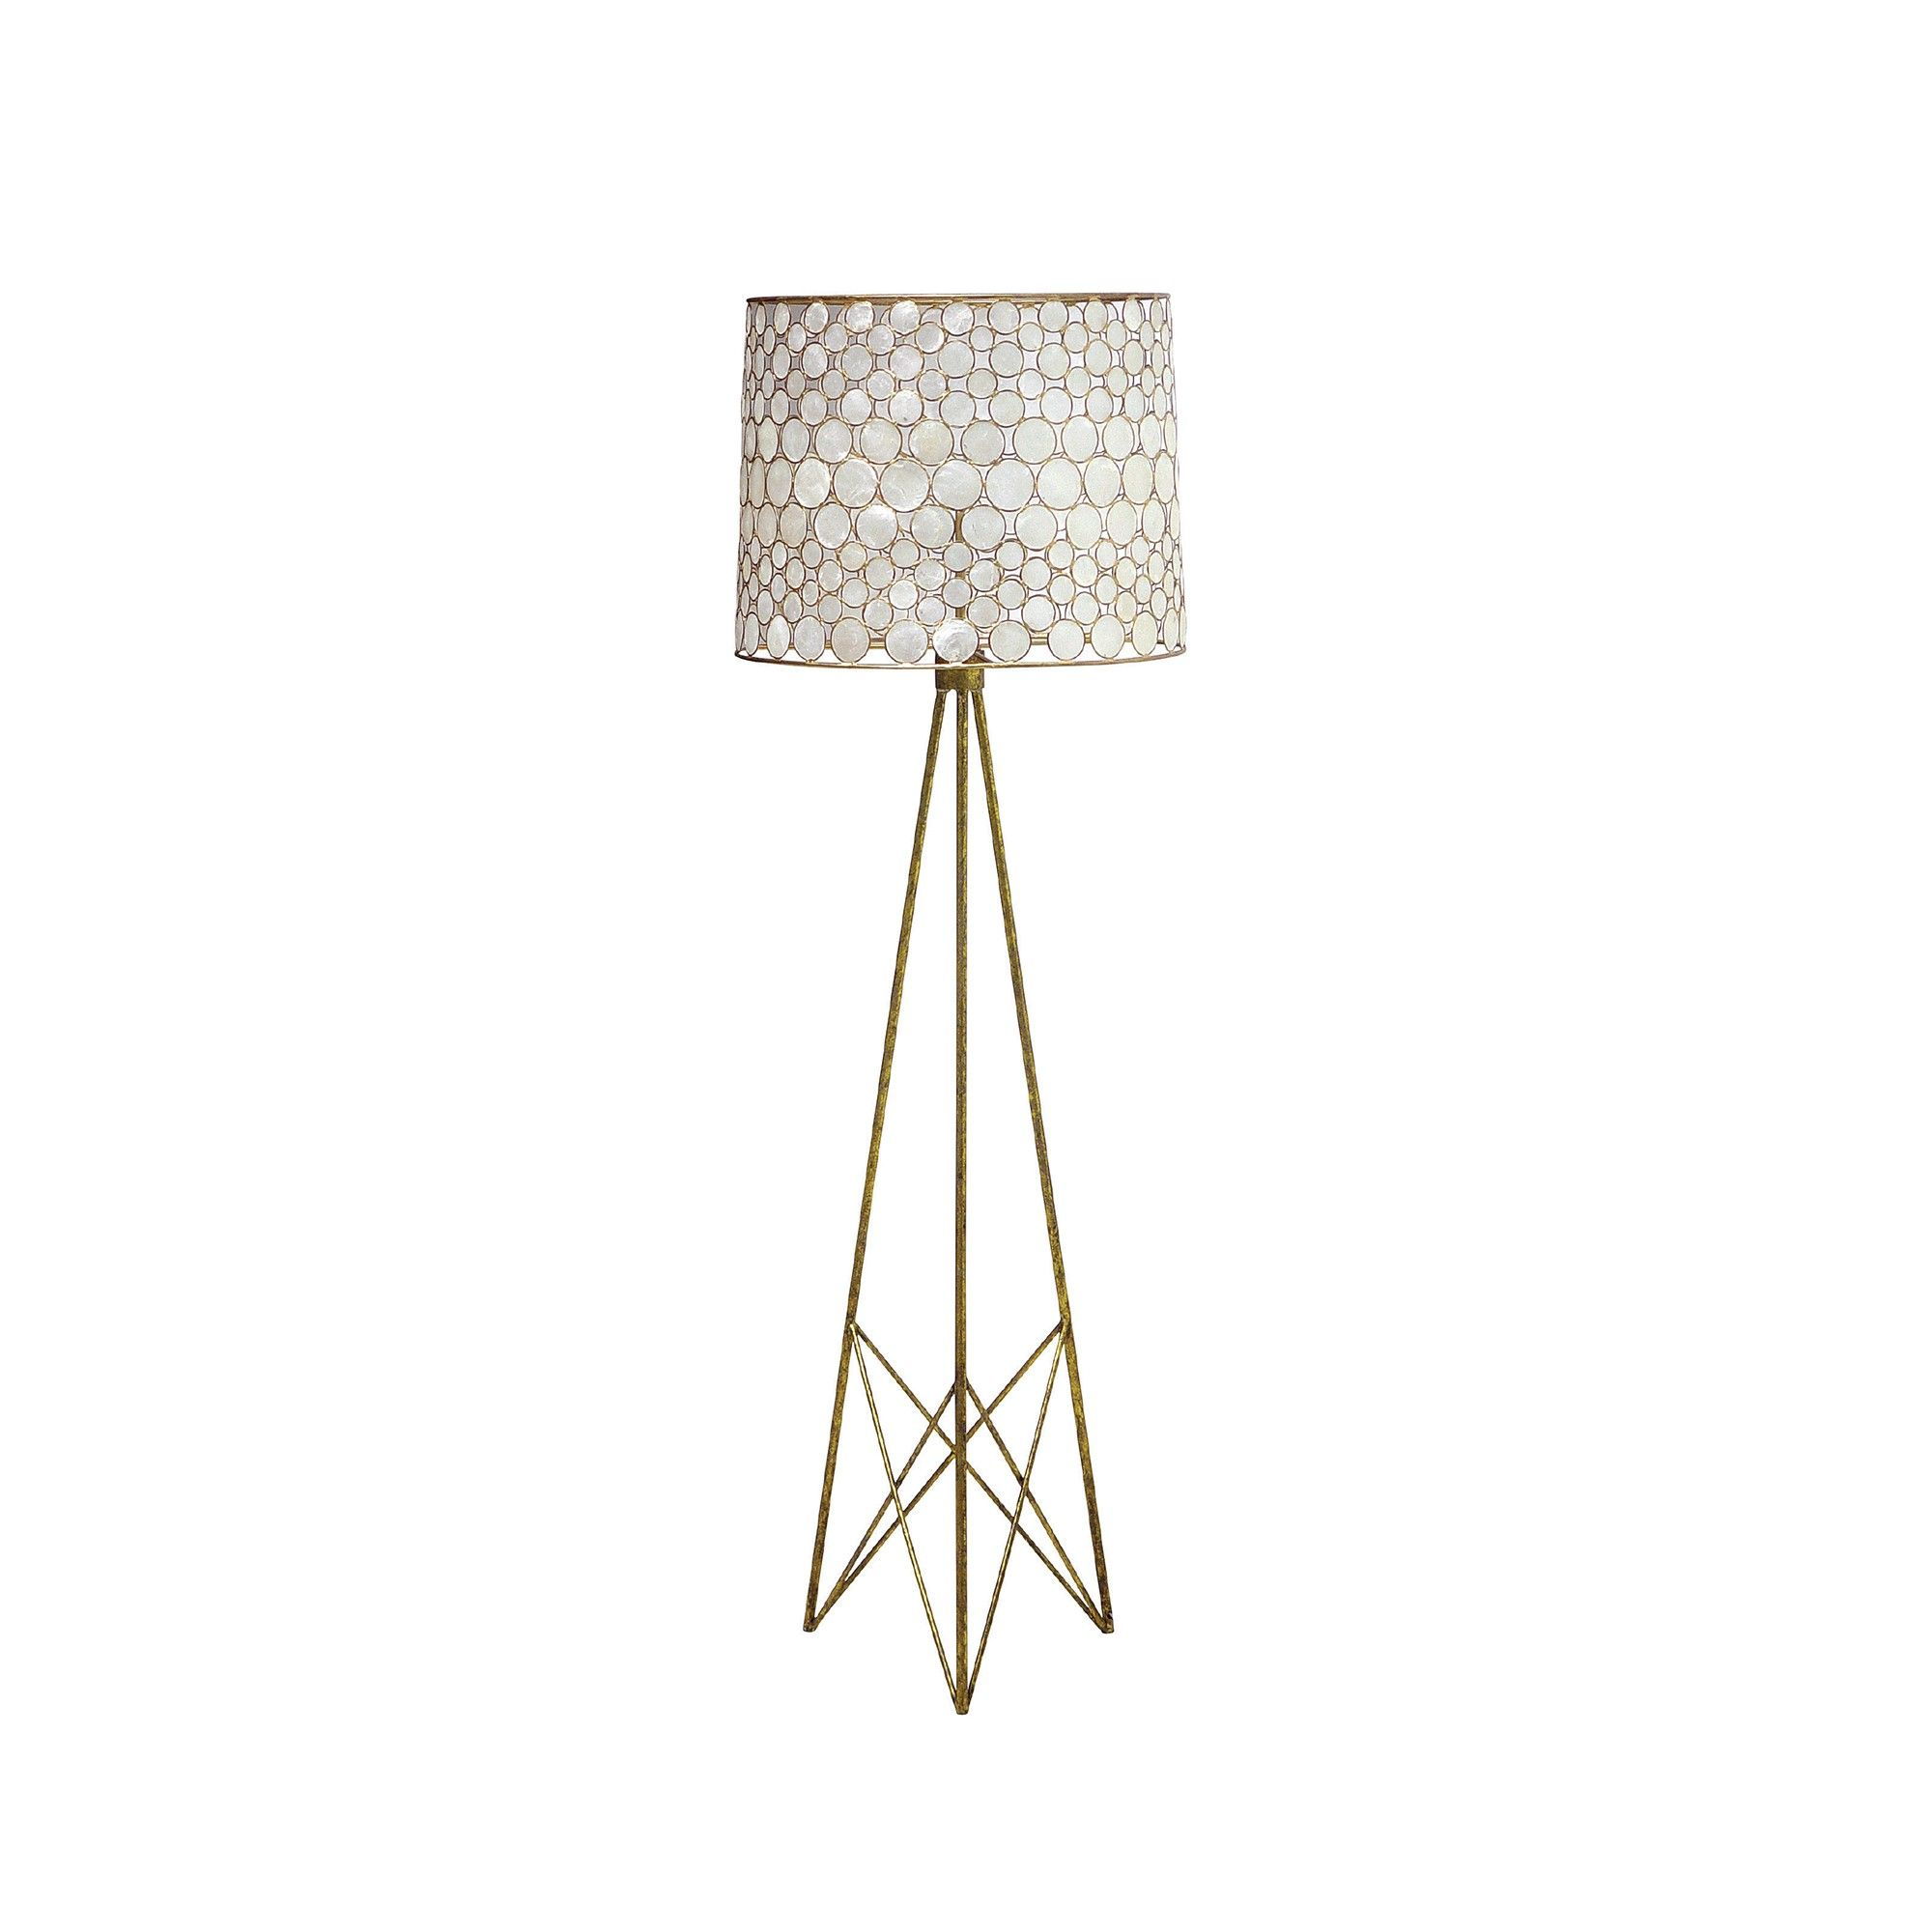 Bring Soft Light And Stylish Glamour To A Luxe Coastal Home With The